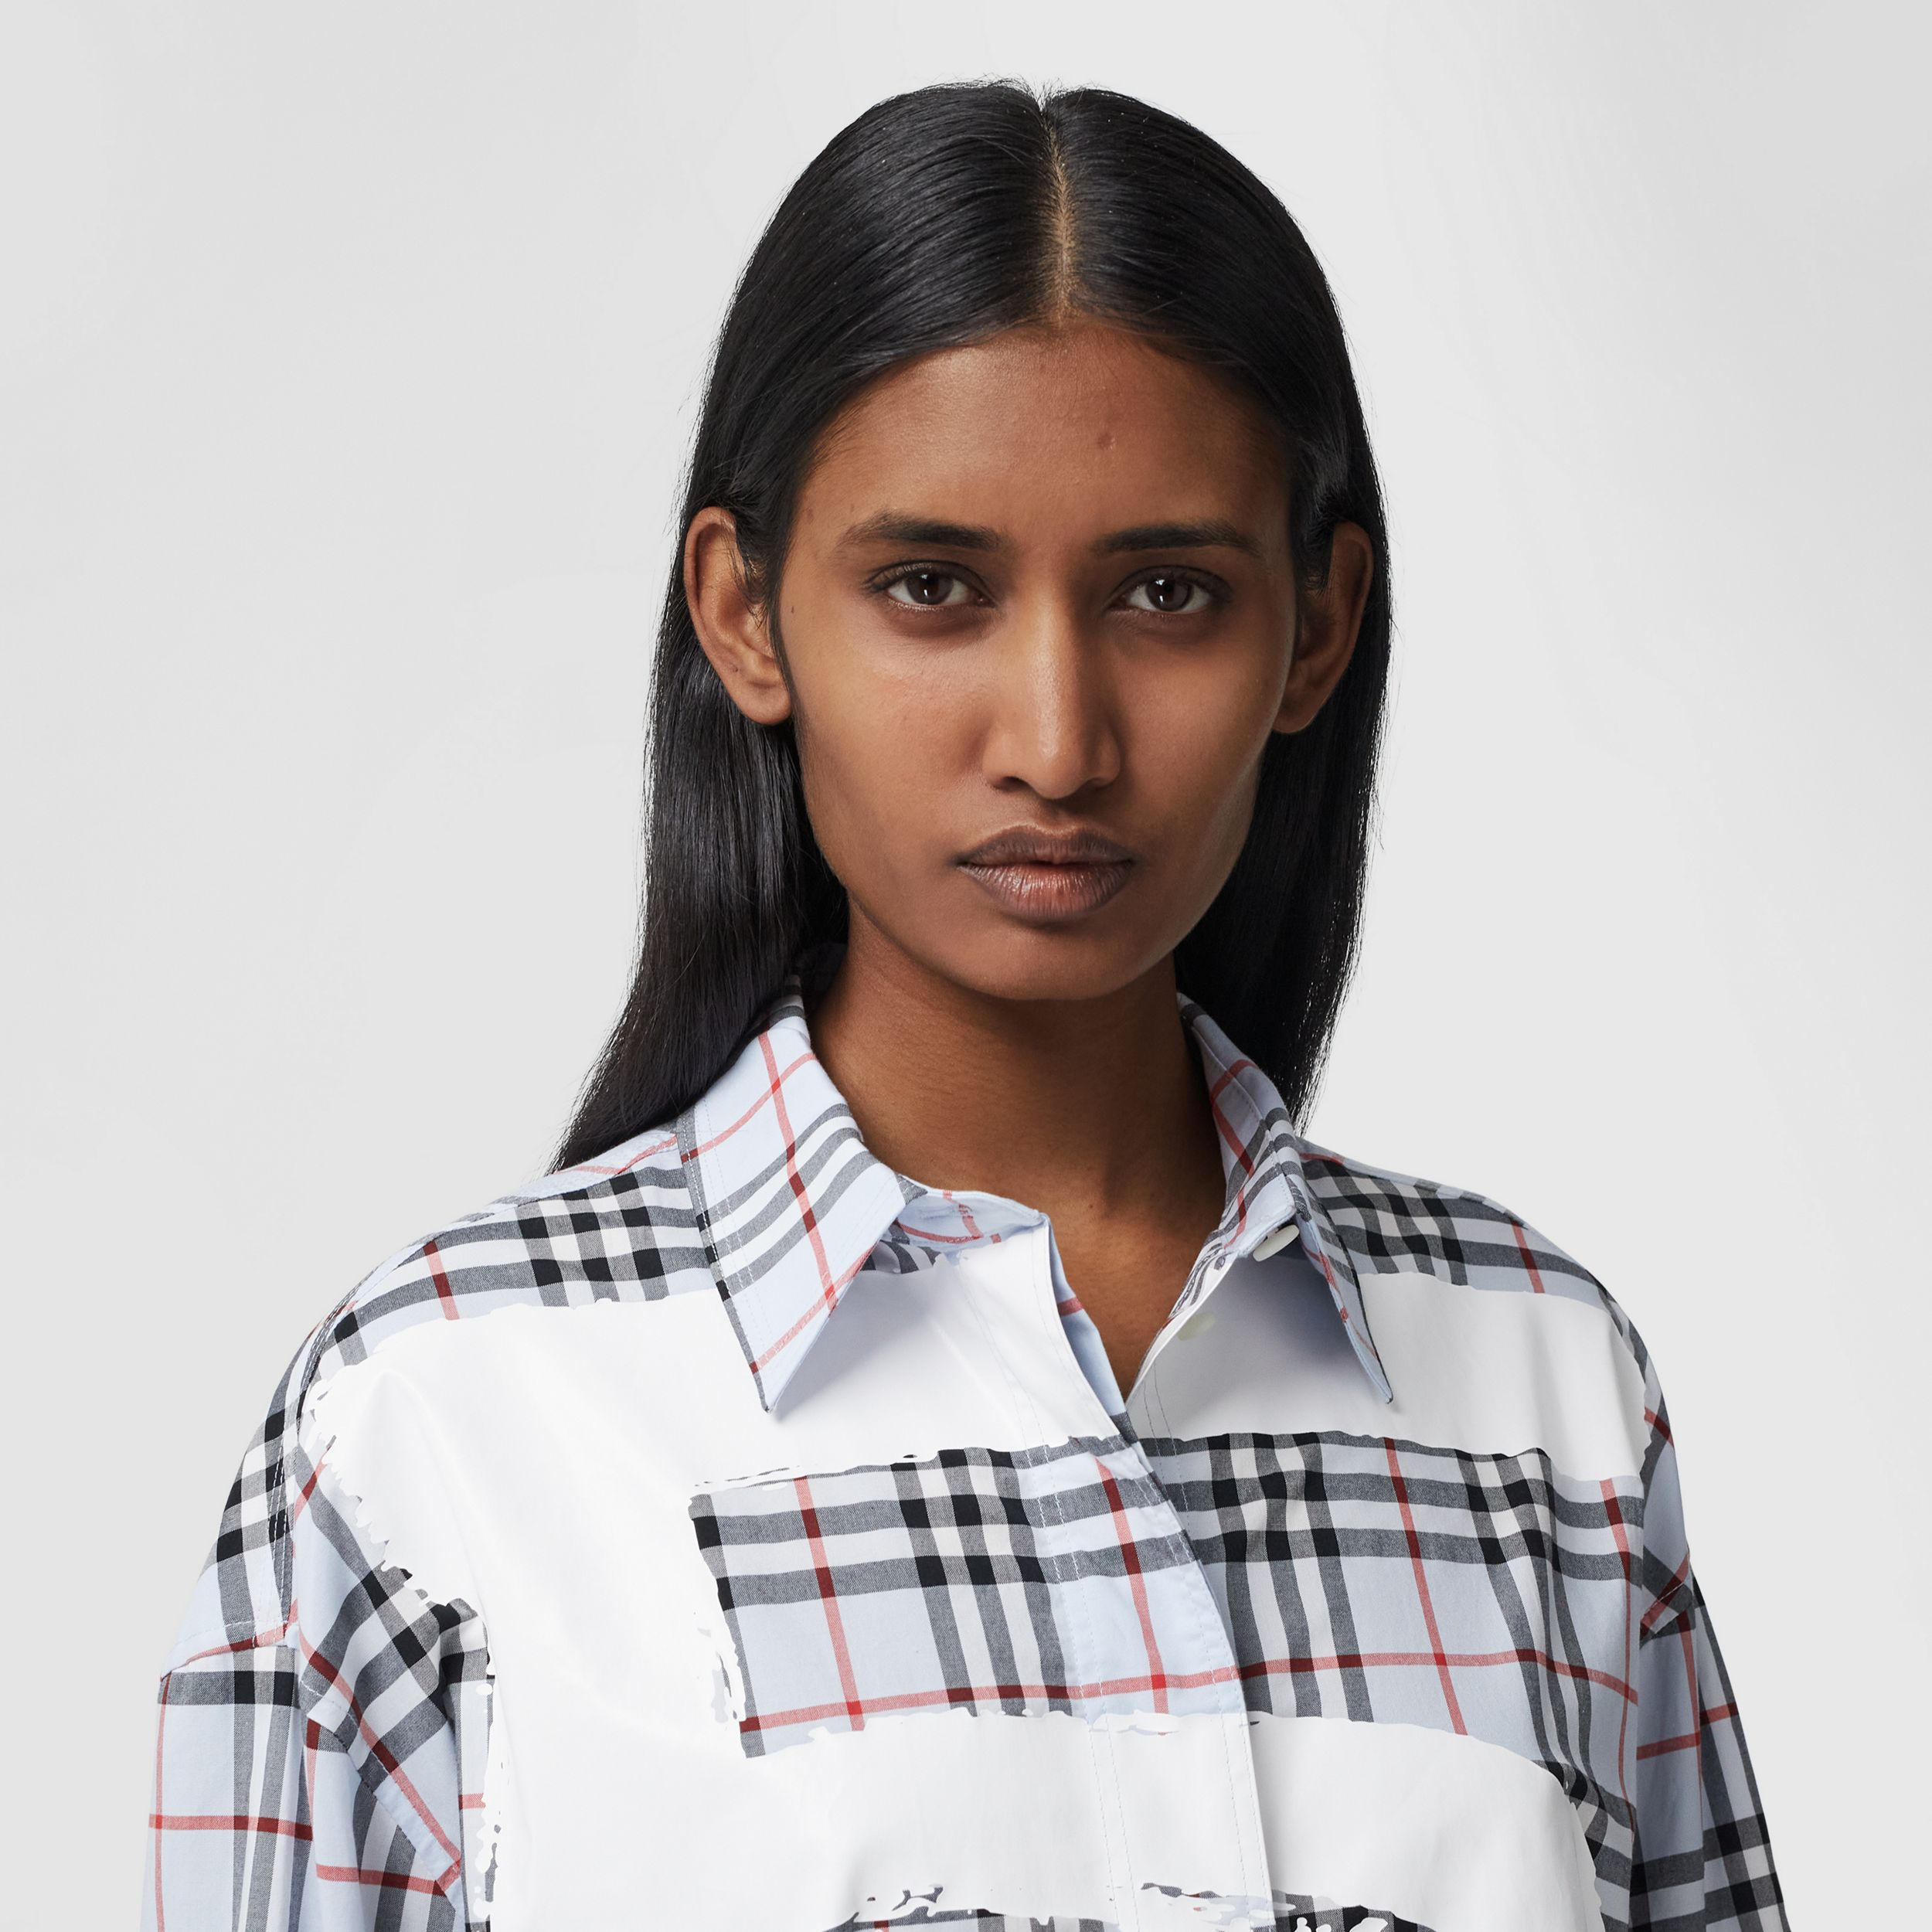 Love Print Vintage Check Cotton Oversized Shirt – Online Exclusive in Pale Blue - Women | Burberry - 2